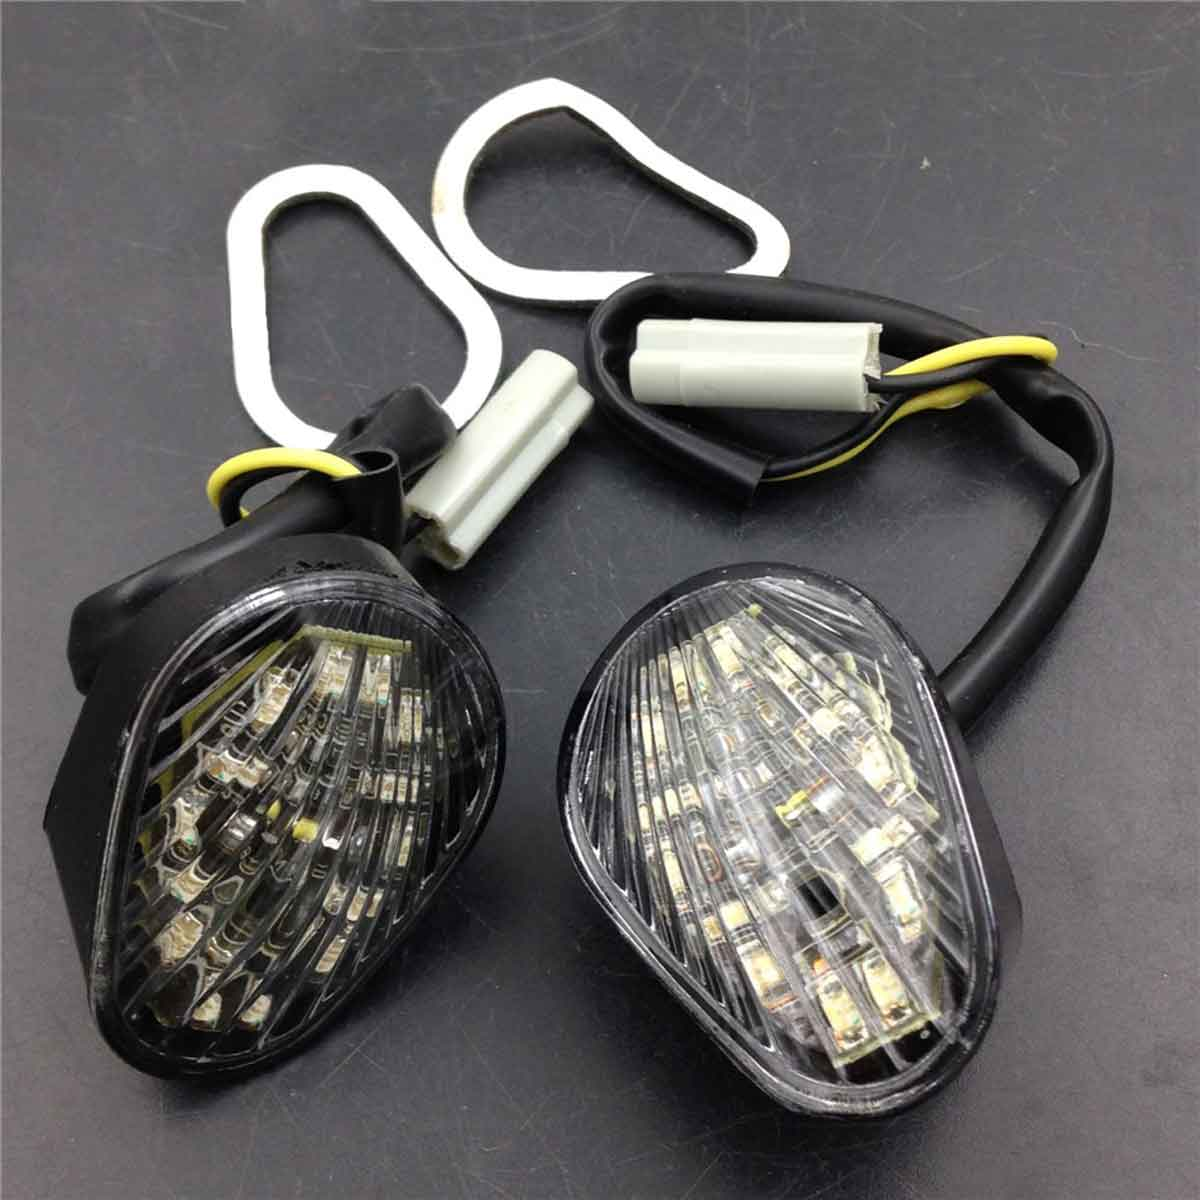 For 2003-2005 04 Yamaha YZF-R6 / YZF-R6S 2006-2007 / YZF-R1 2002-2014 Motorcycle LED Flush Mount Turn Signal Light Bike Smoke